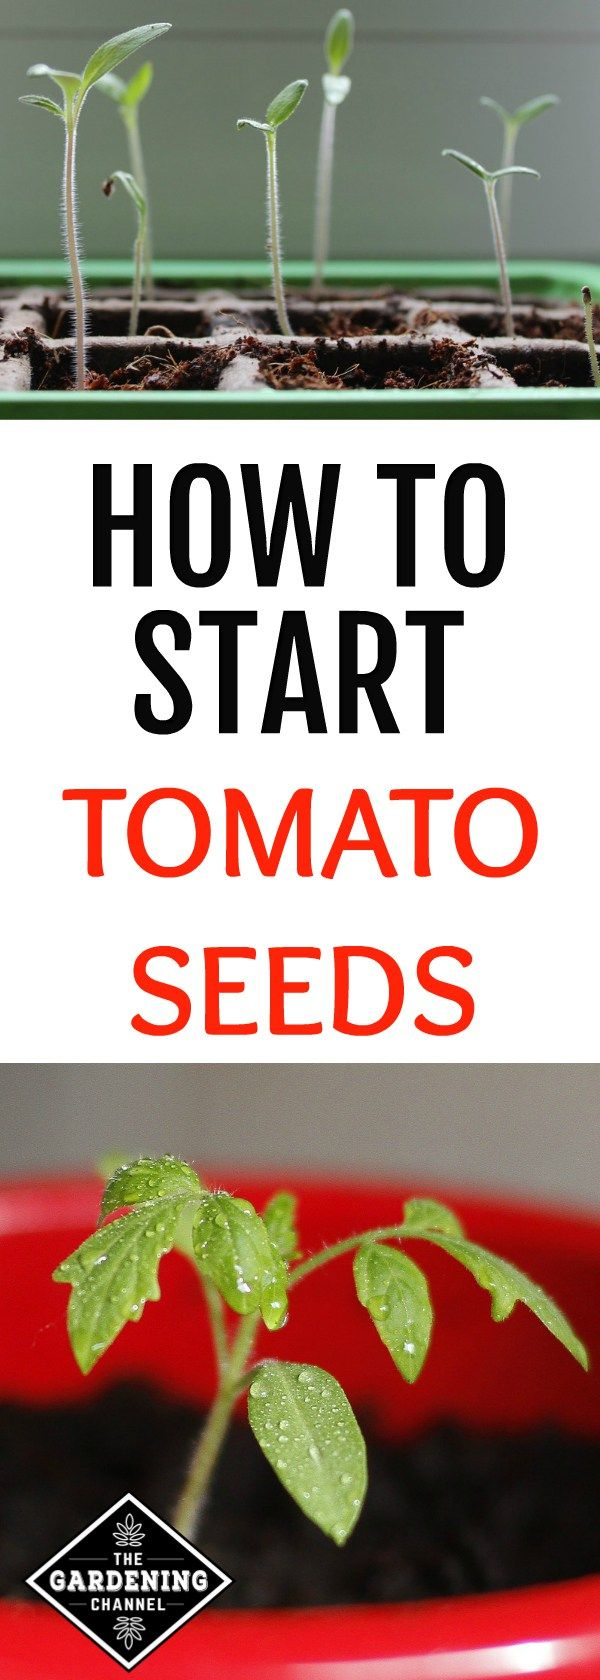 Follow this guide to learn how to save money by starting tomato seeds indoors for planting. Learn how to grow tomatoes from seeds instead of buying tomato transplants.